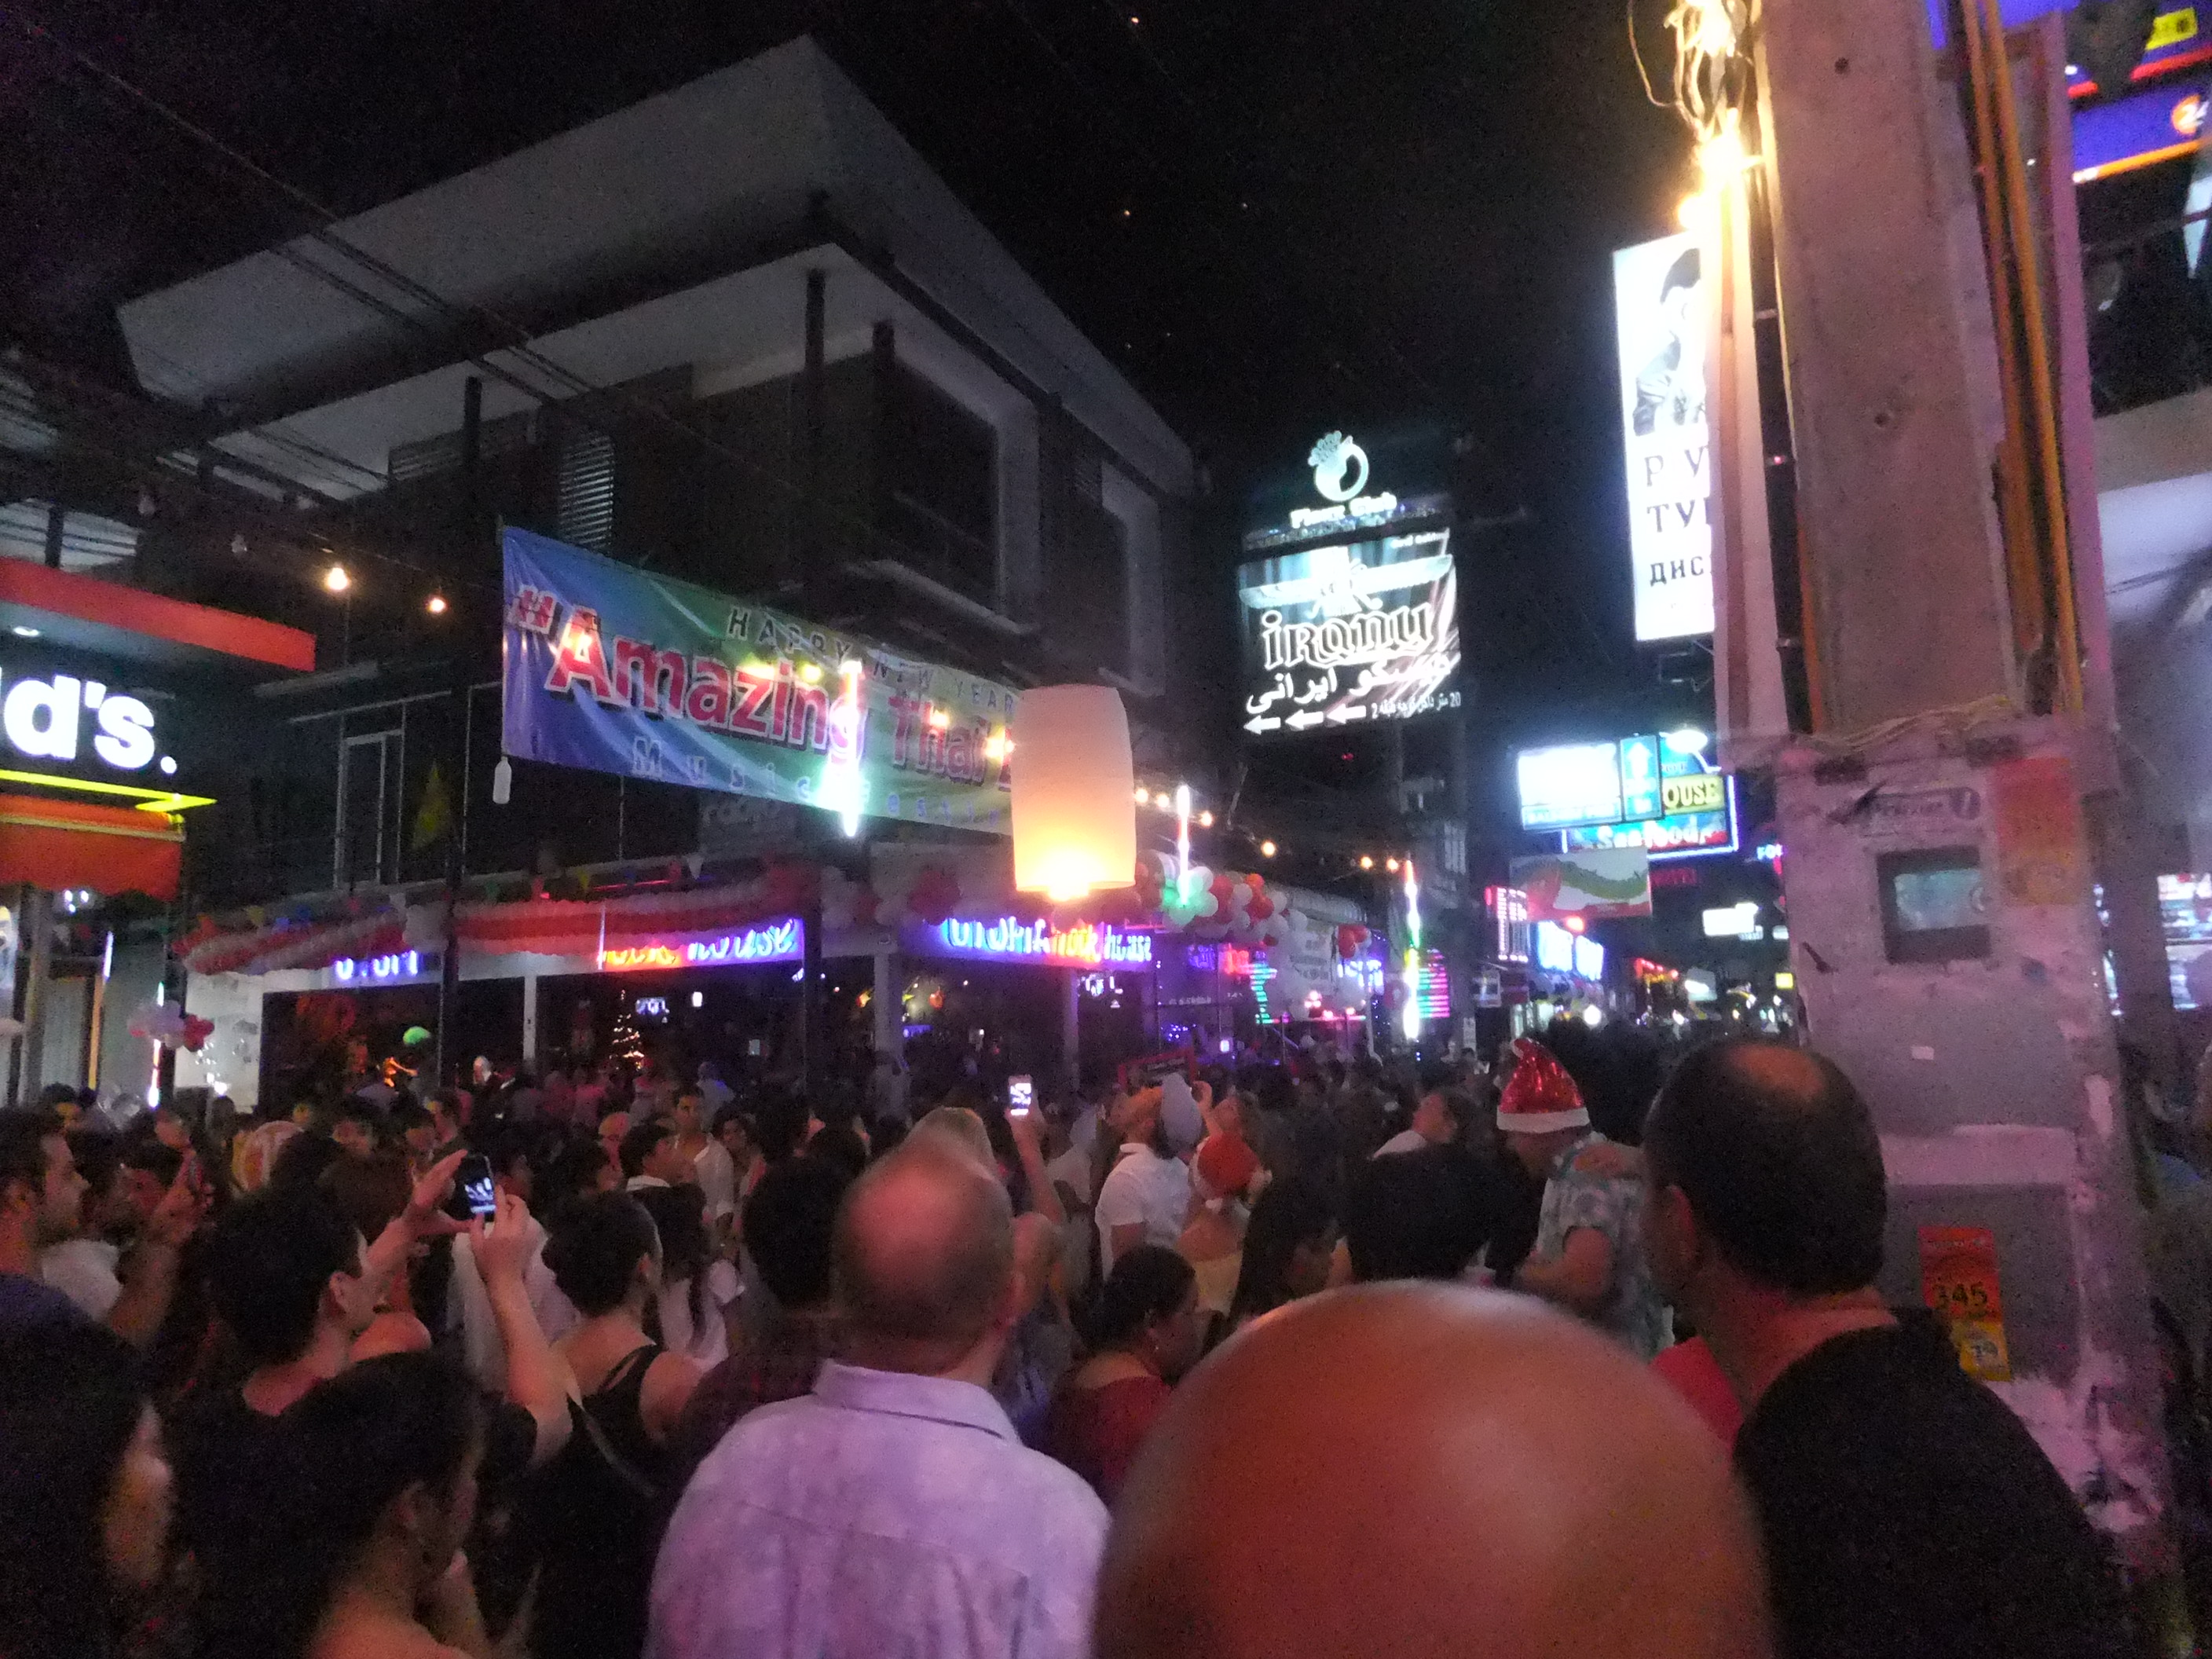 Pattaya for New Years Eve